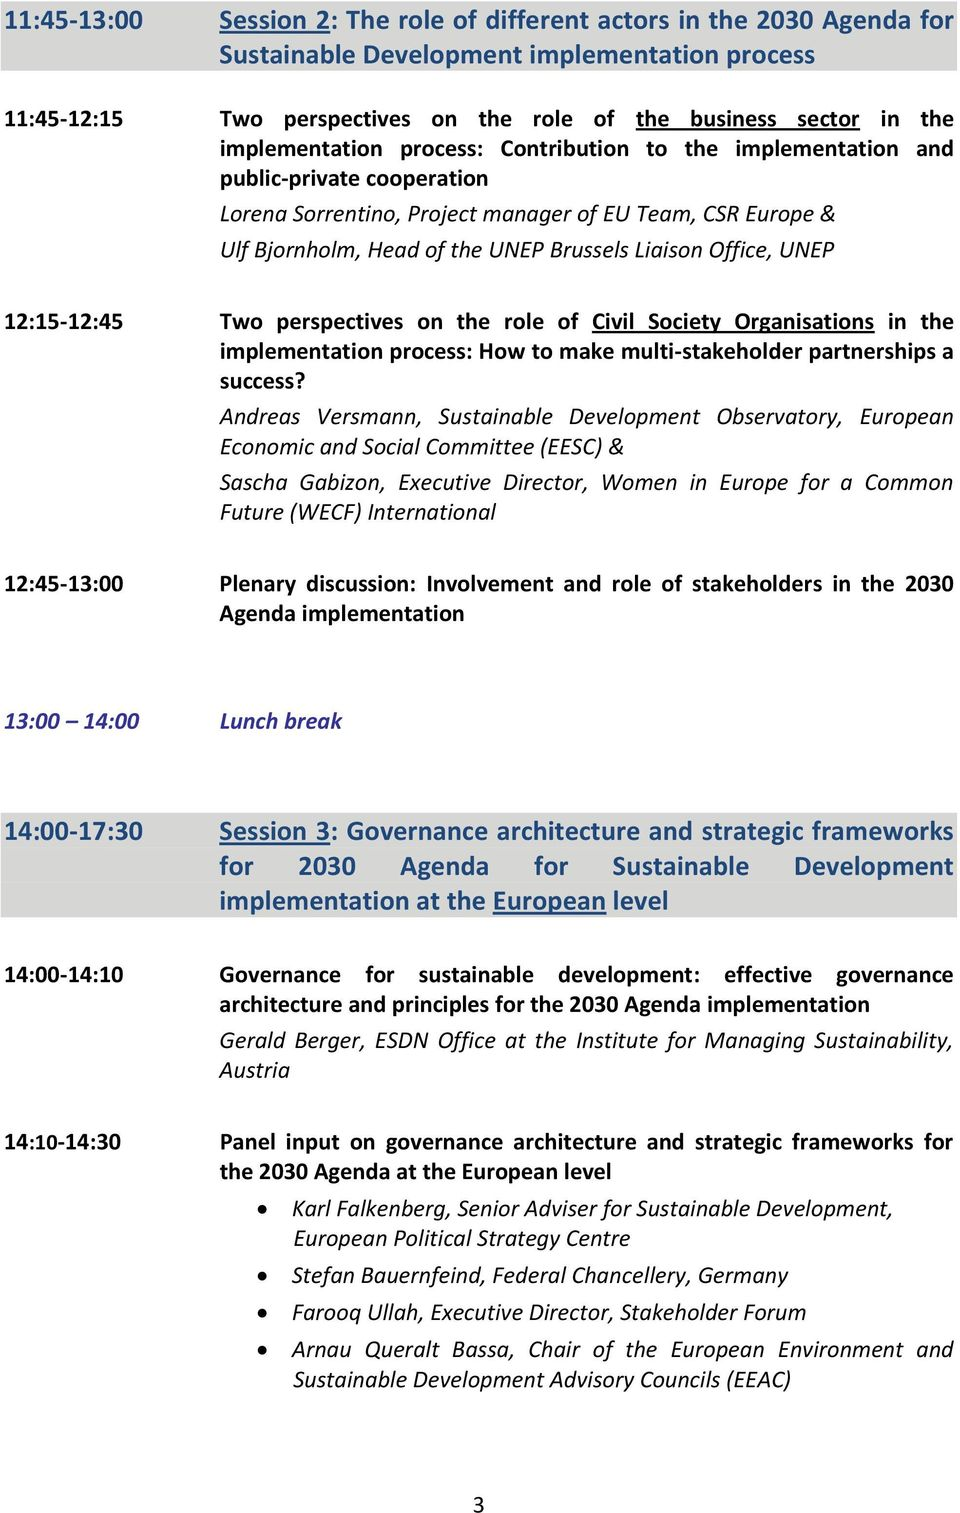 Office, UNEP 12:15-12:45 Two perspectives on the role of Civil Society Organisations in the implementation process: How to make multi-stakeholder partnerships a success?